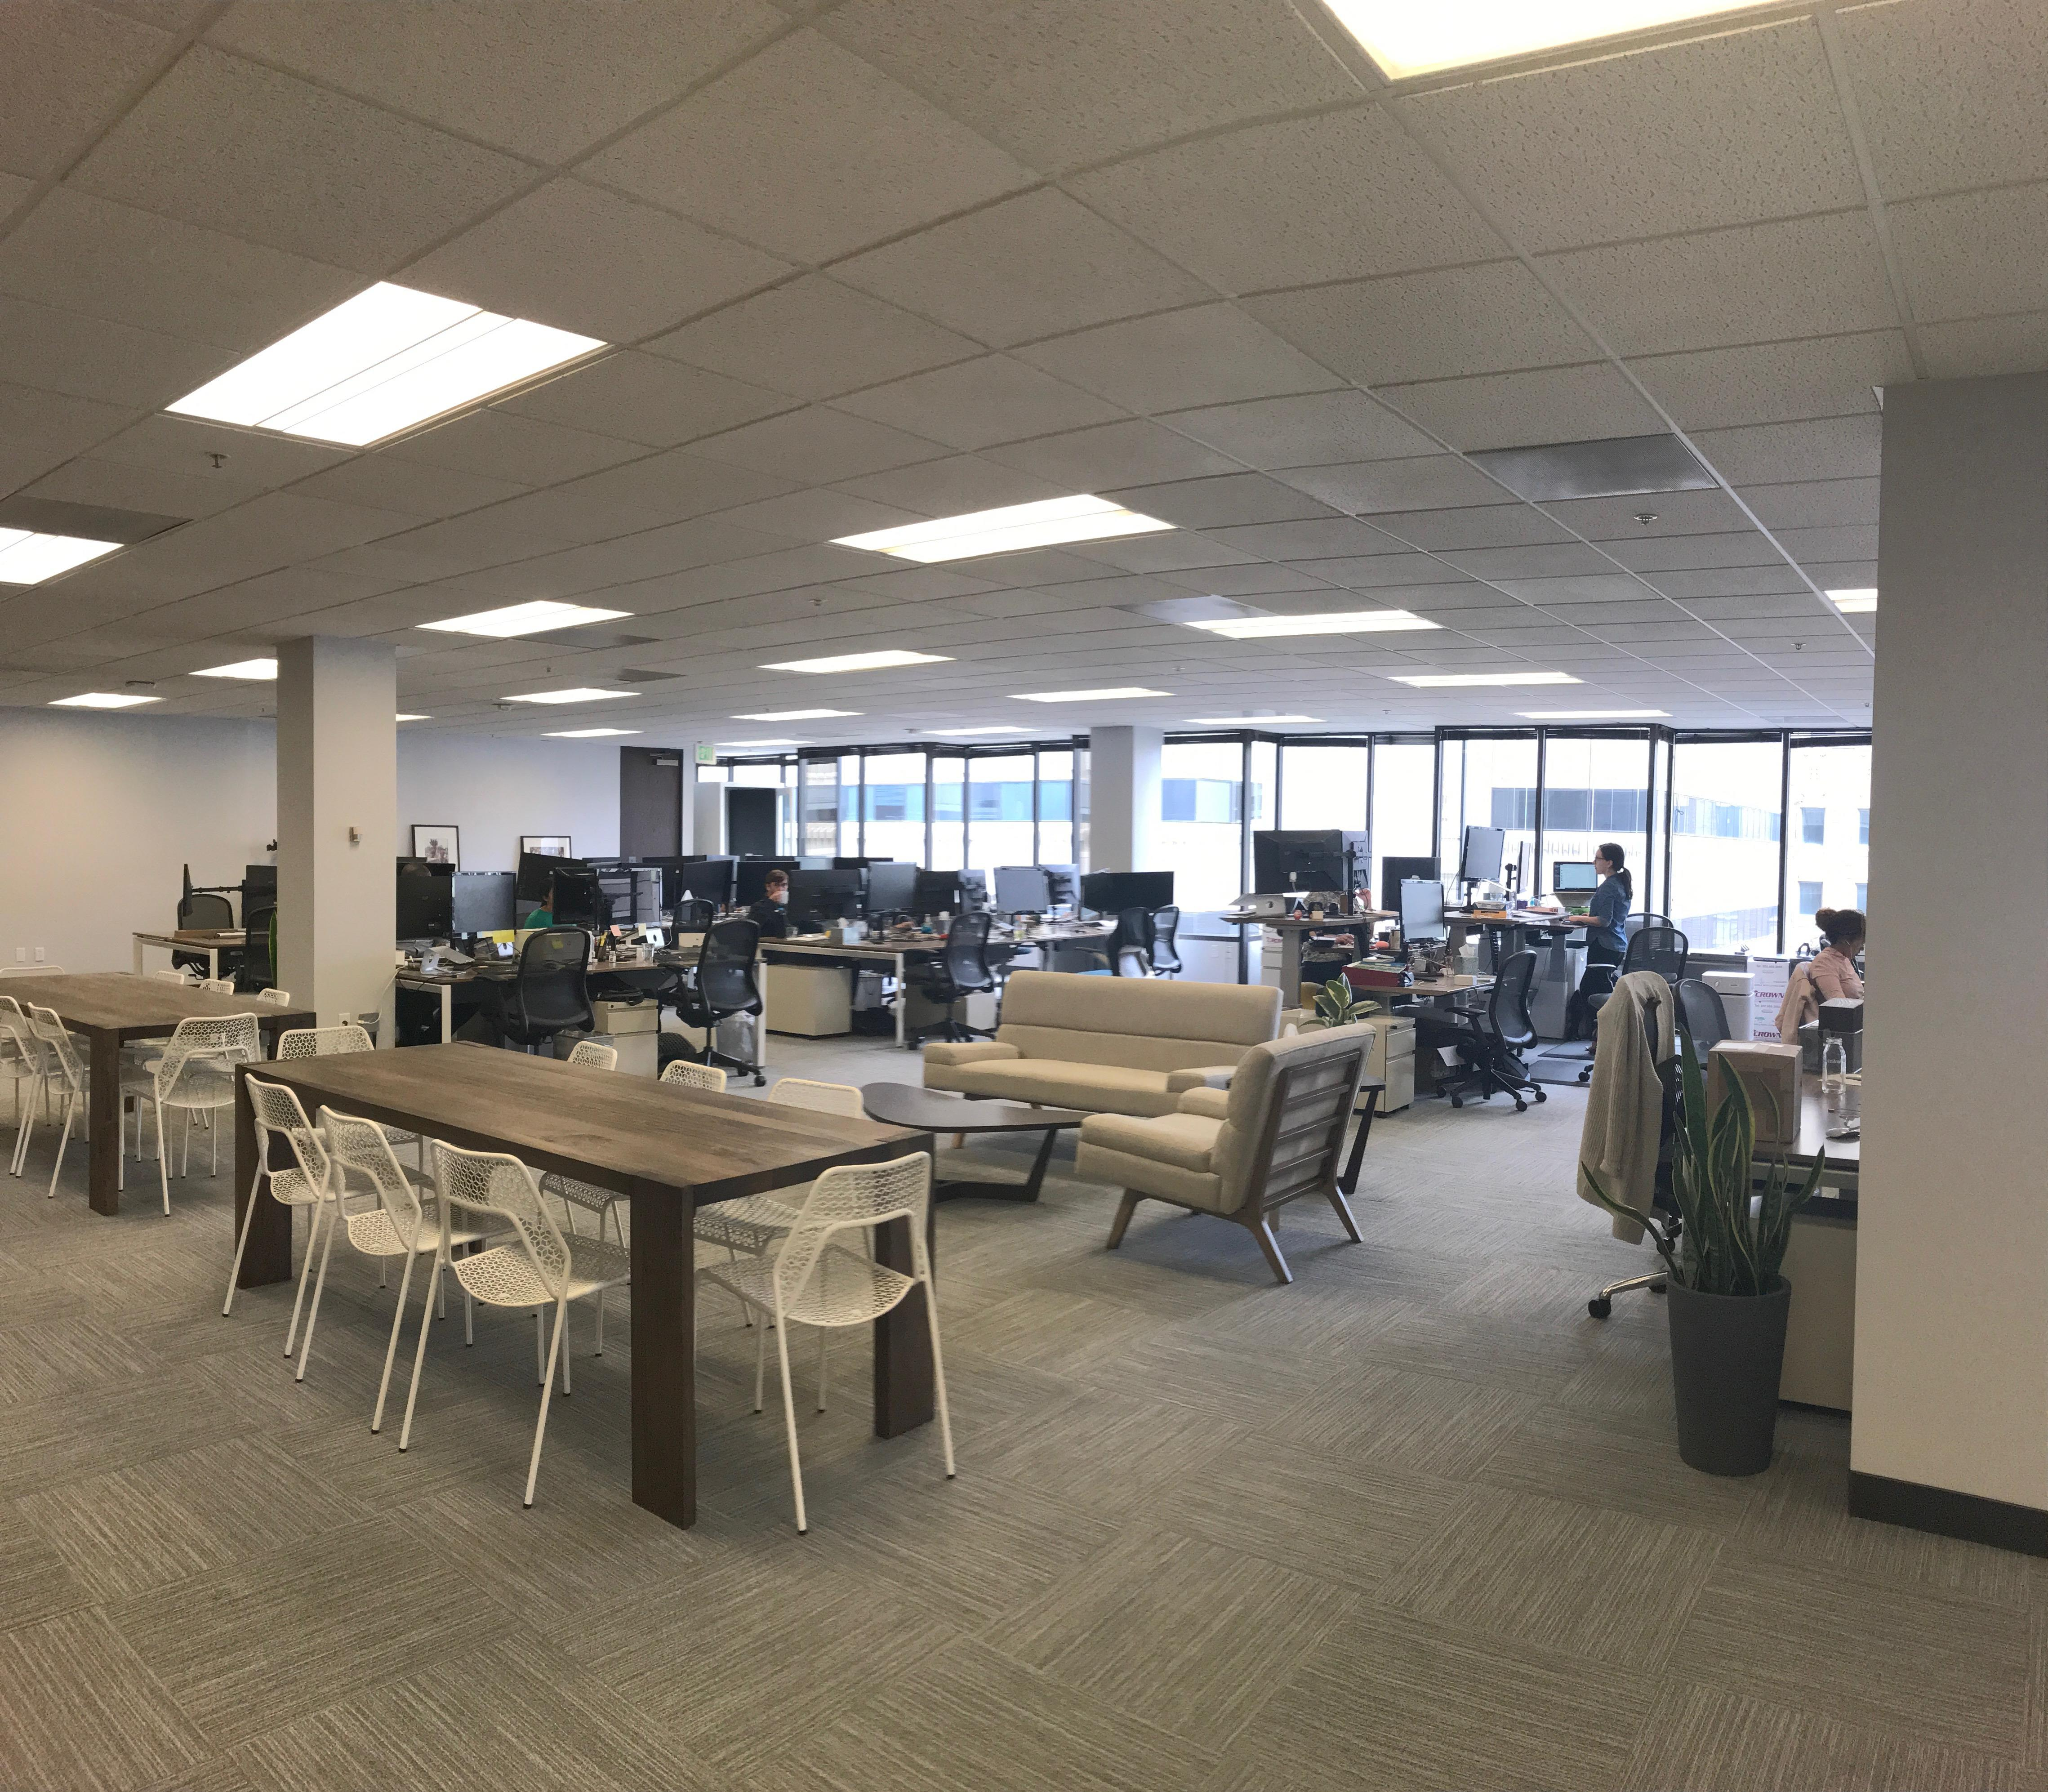 Metabiota - Office Space for 12